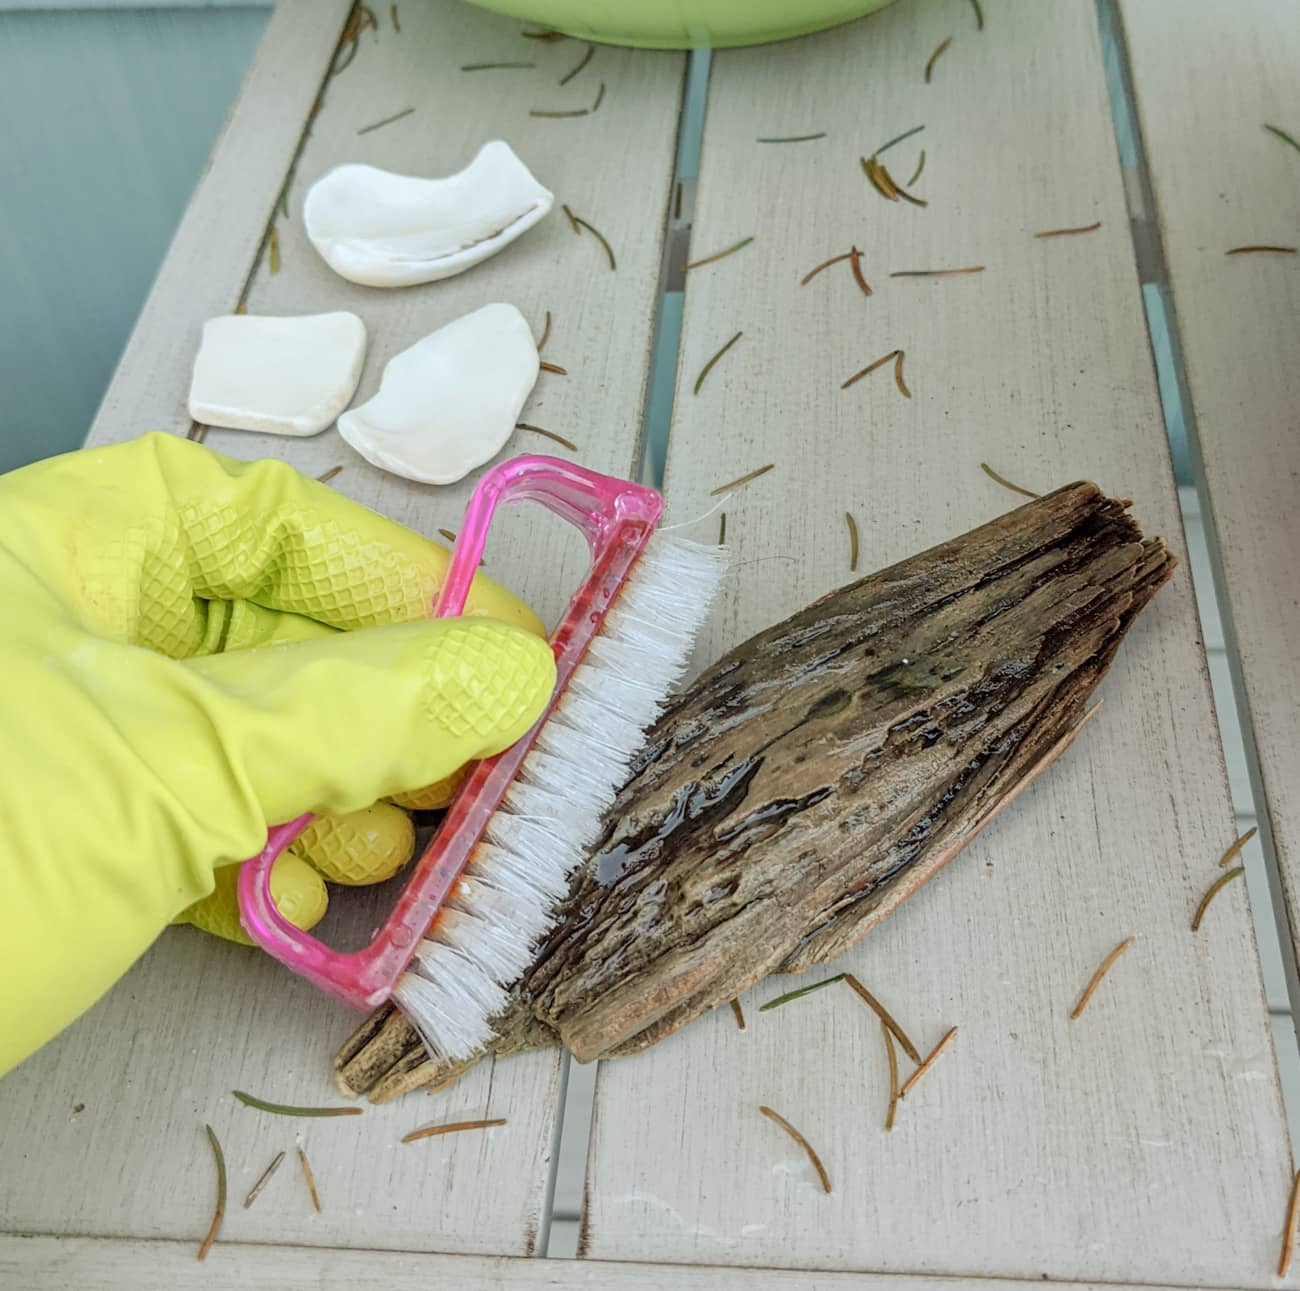 Scrubbing can remove debris that is embedded in the wood